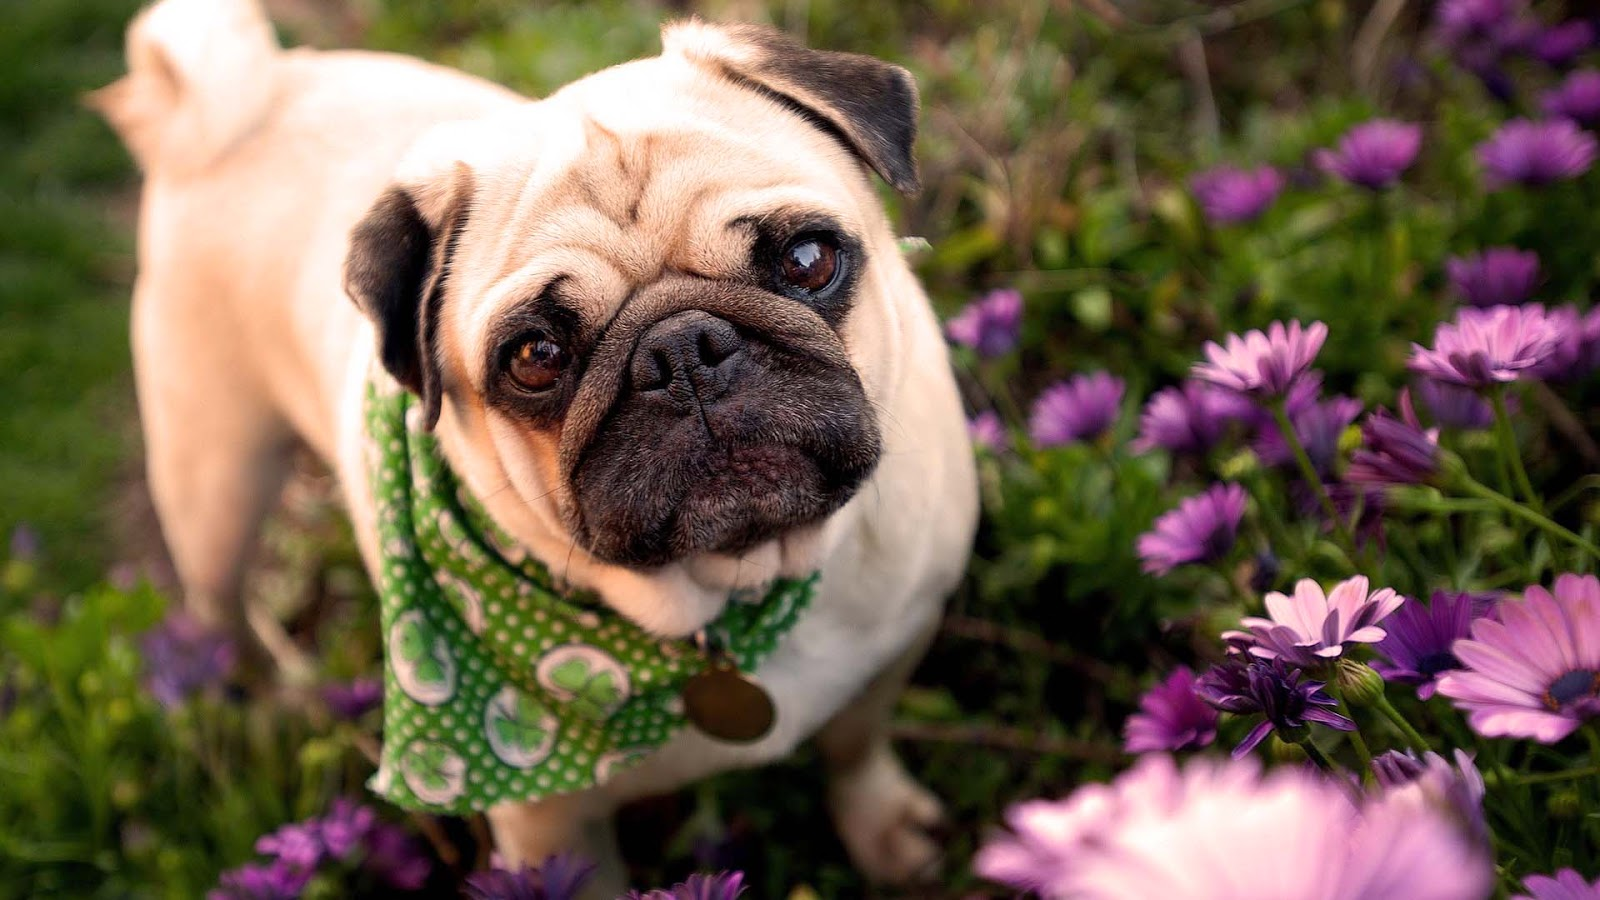 Cute Pugs Puppies for Free HD wallpaper